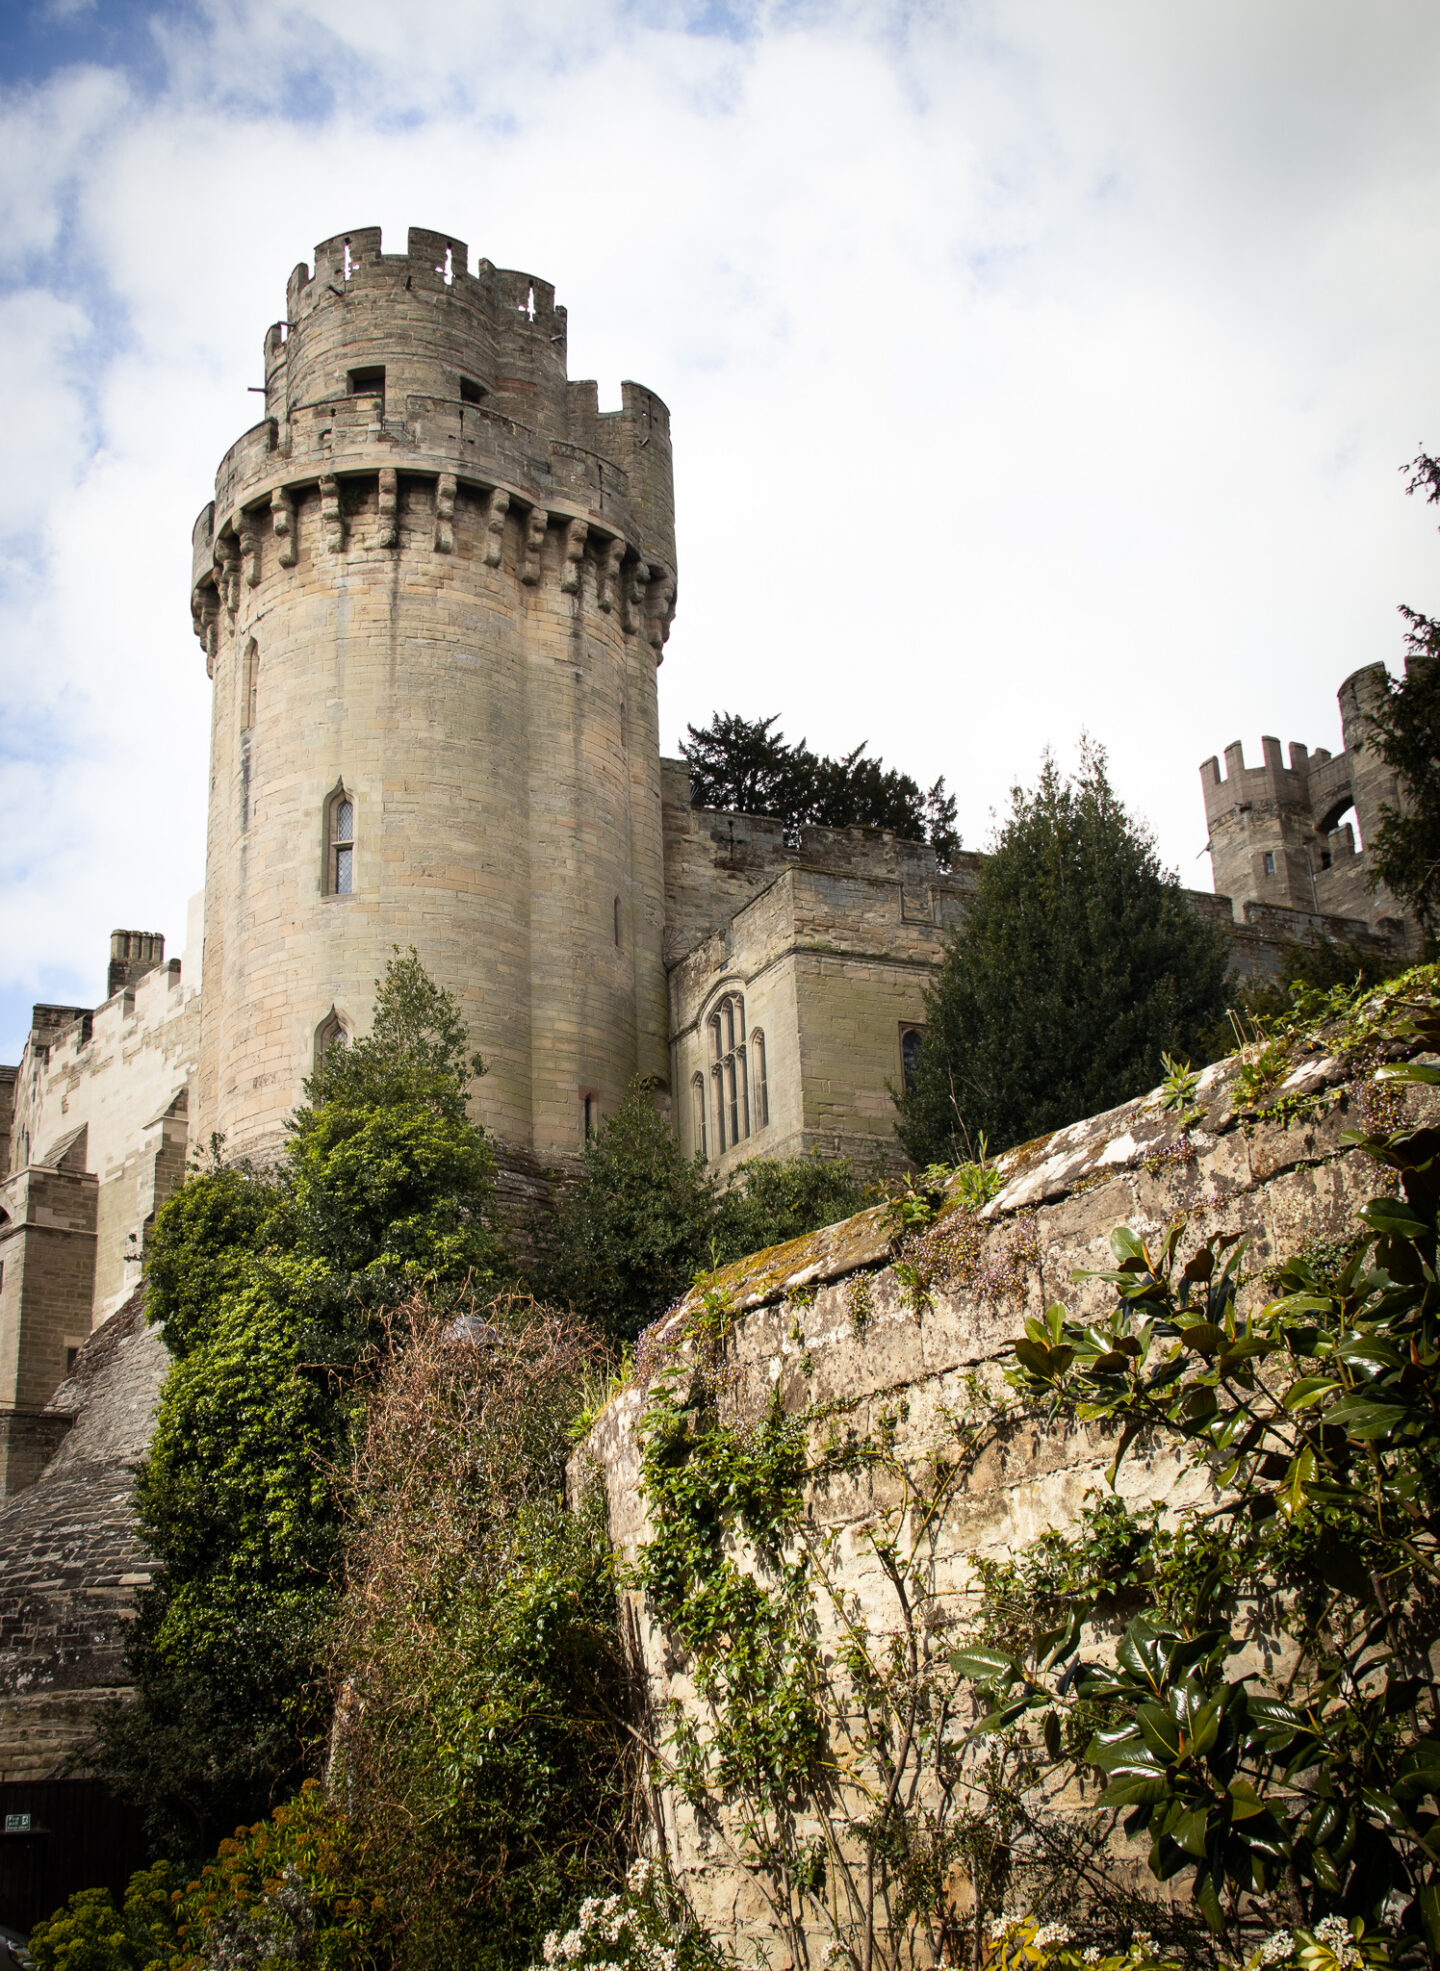 Caesar's tower is the tallest tower at Warwick Castle. The tower suites are inside. This photo was taken from Mill Street.